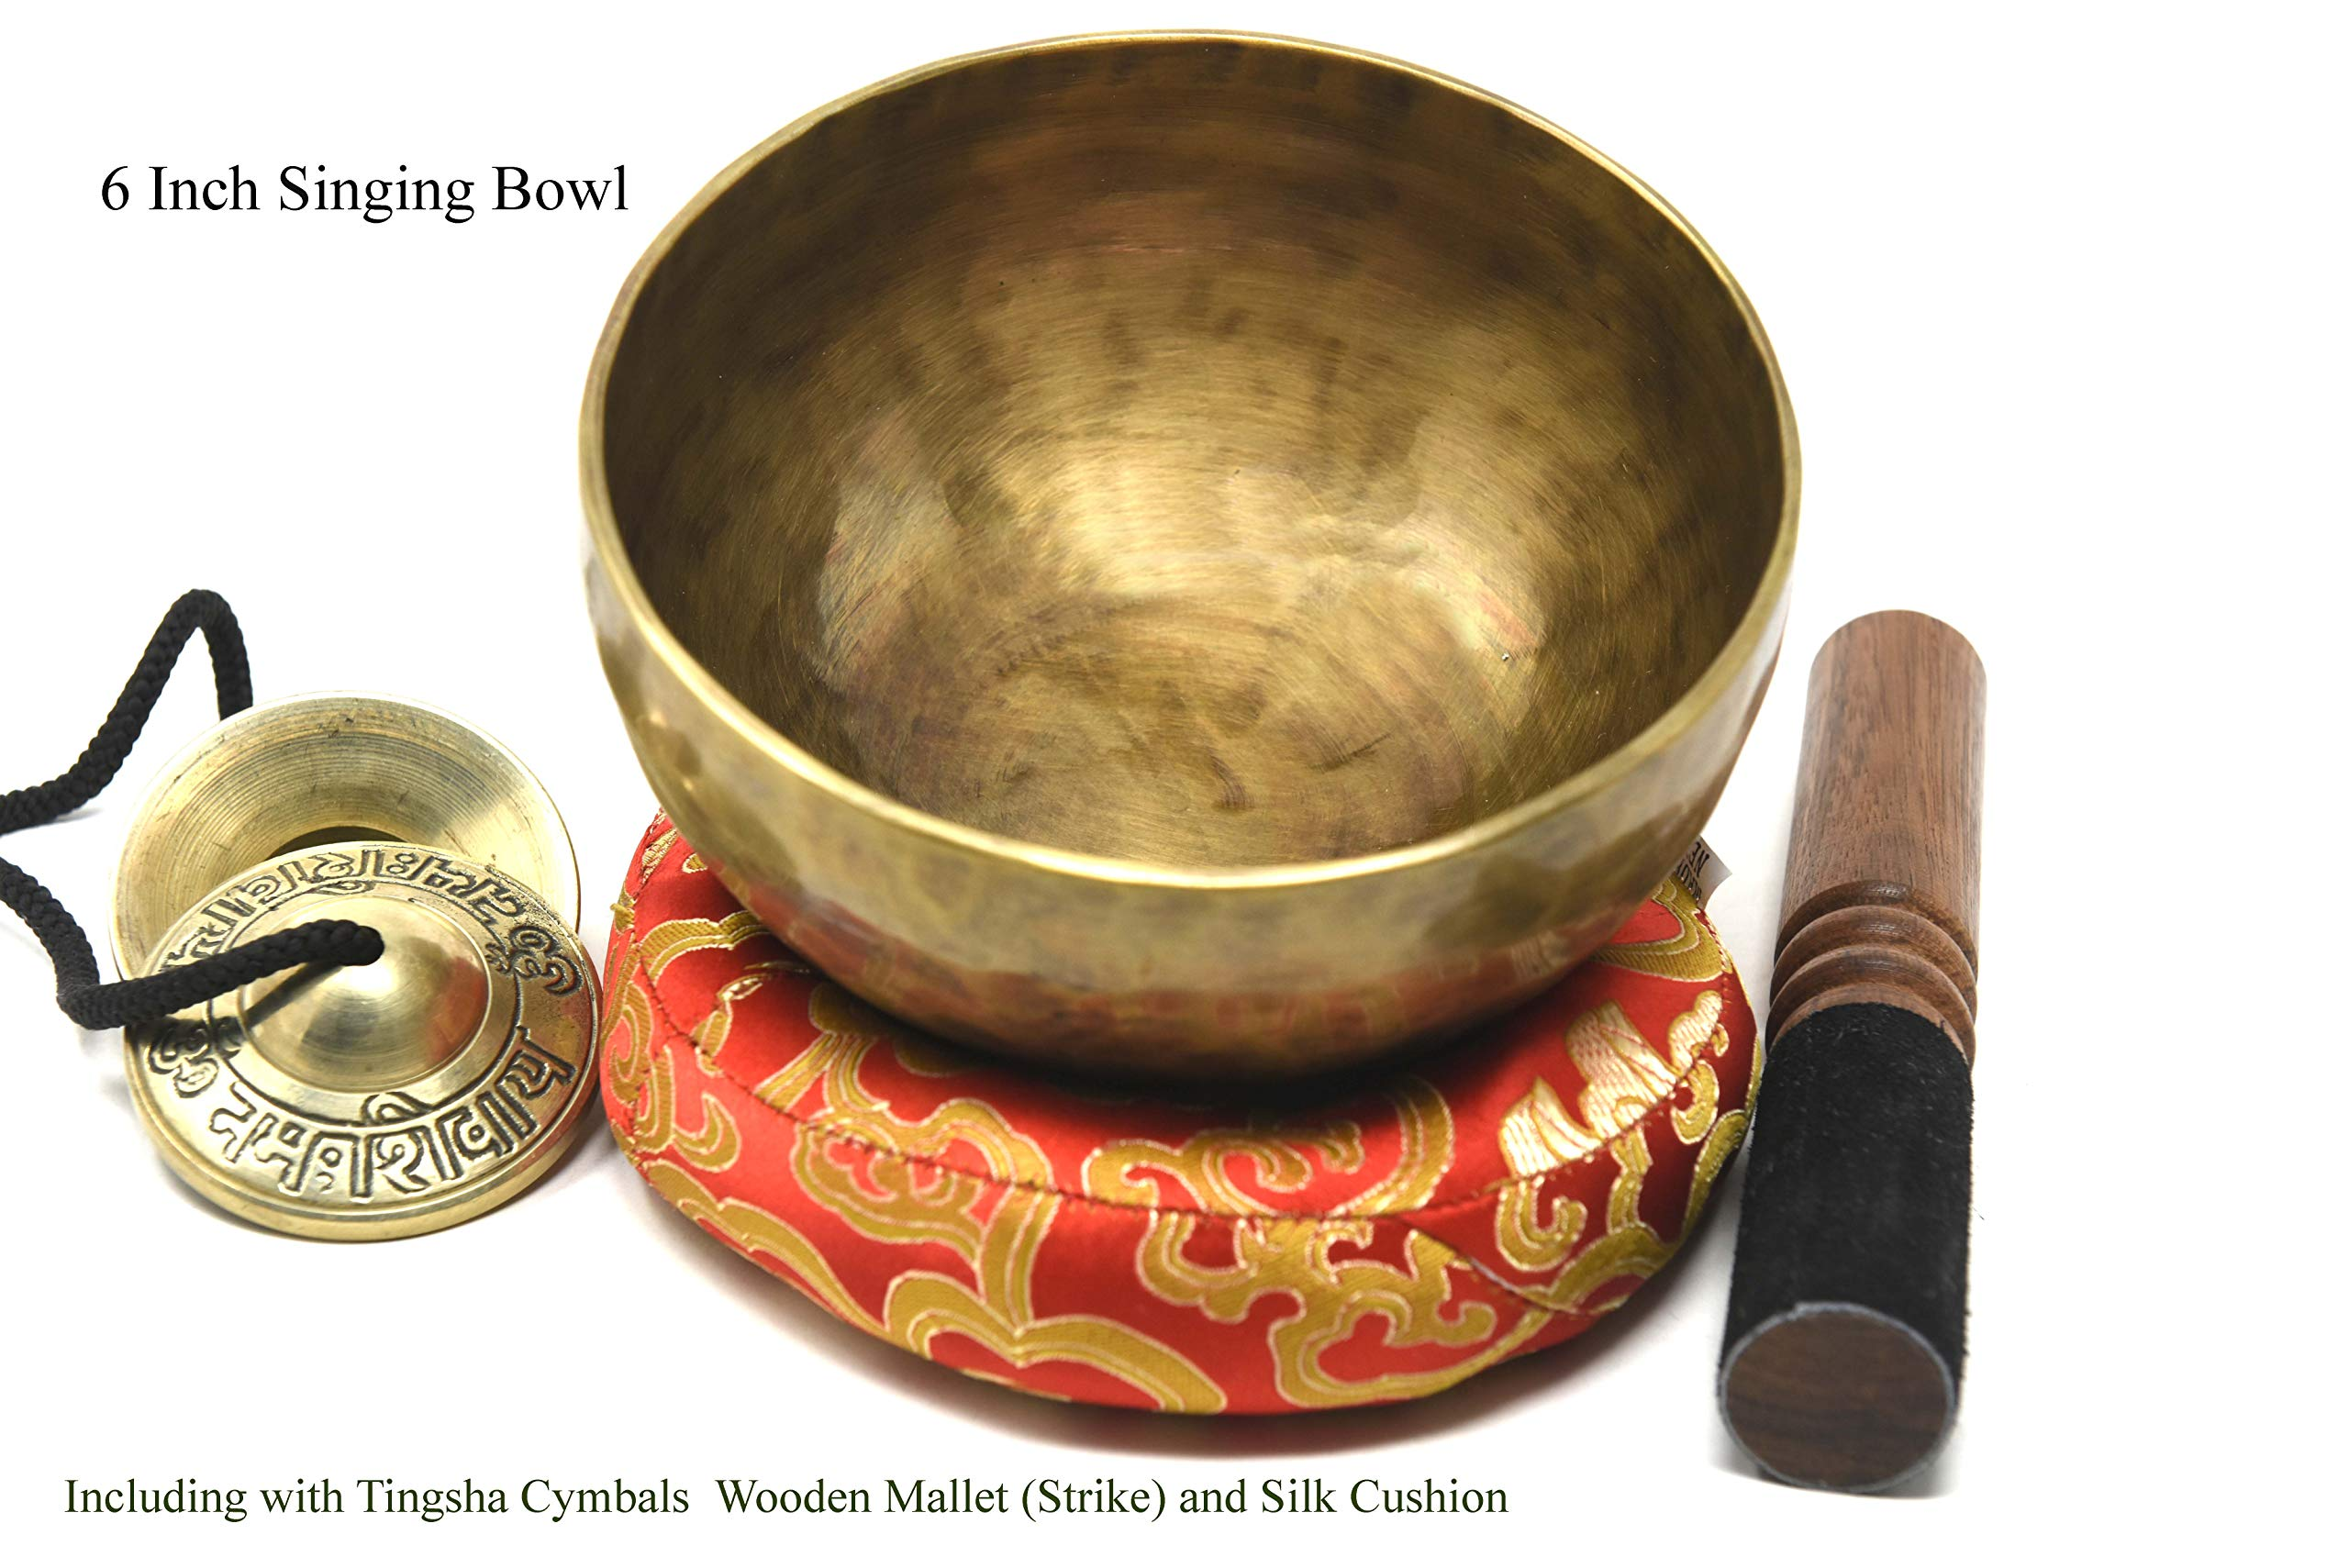 Hand Hammered Tibetan Meditation Singing Bowl 6 Inches - Yoga Old Bowl (Original Version) Including Tingsha Cymbals, Silk Cushion and Wooden leather wrapped mallet. by TM THAMELMART FOR BEAUTIFUL MINDS